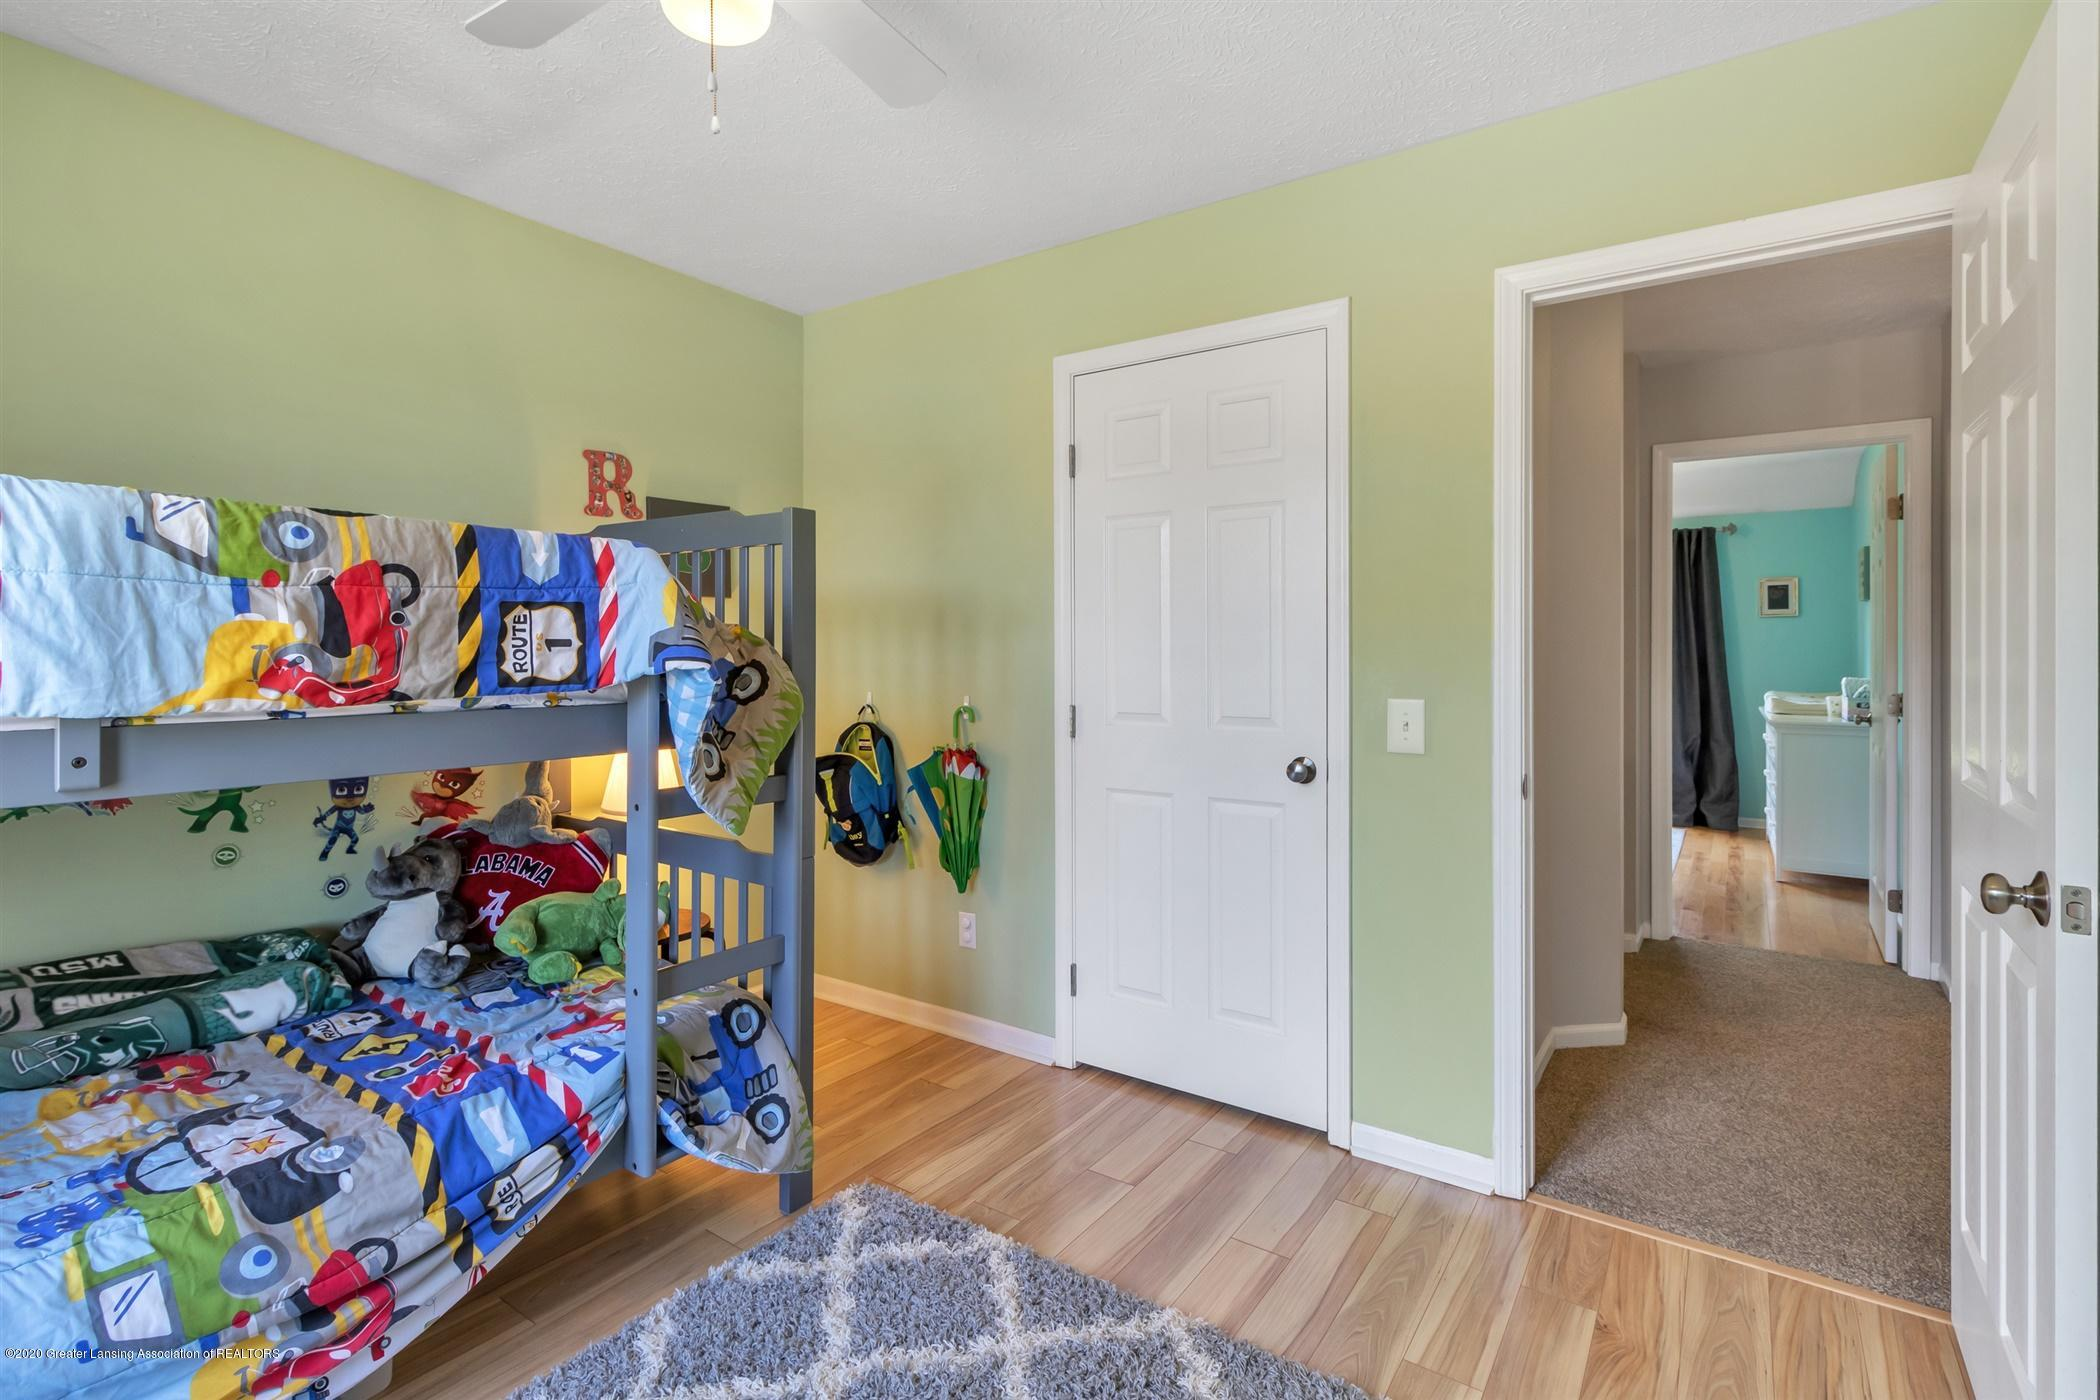 2945 Whistlewood Way - 22-2945Whistlewood-WindowStill-Real - 22